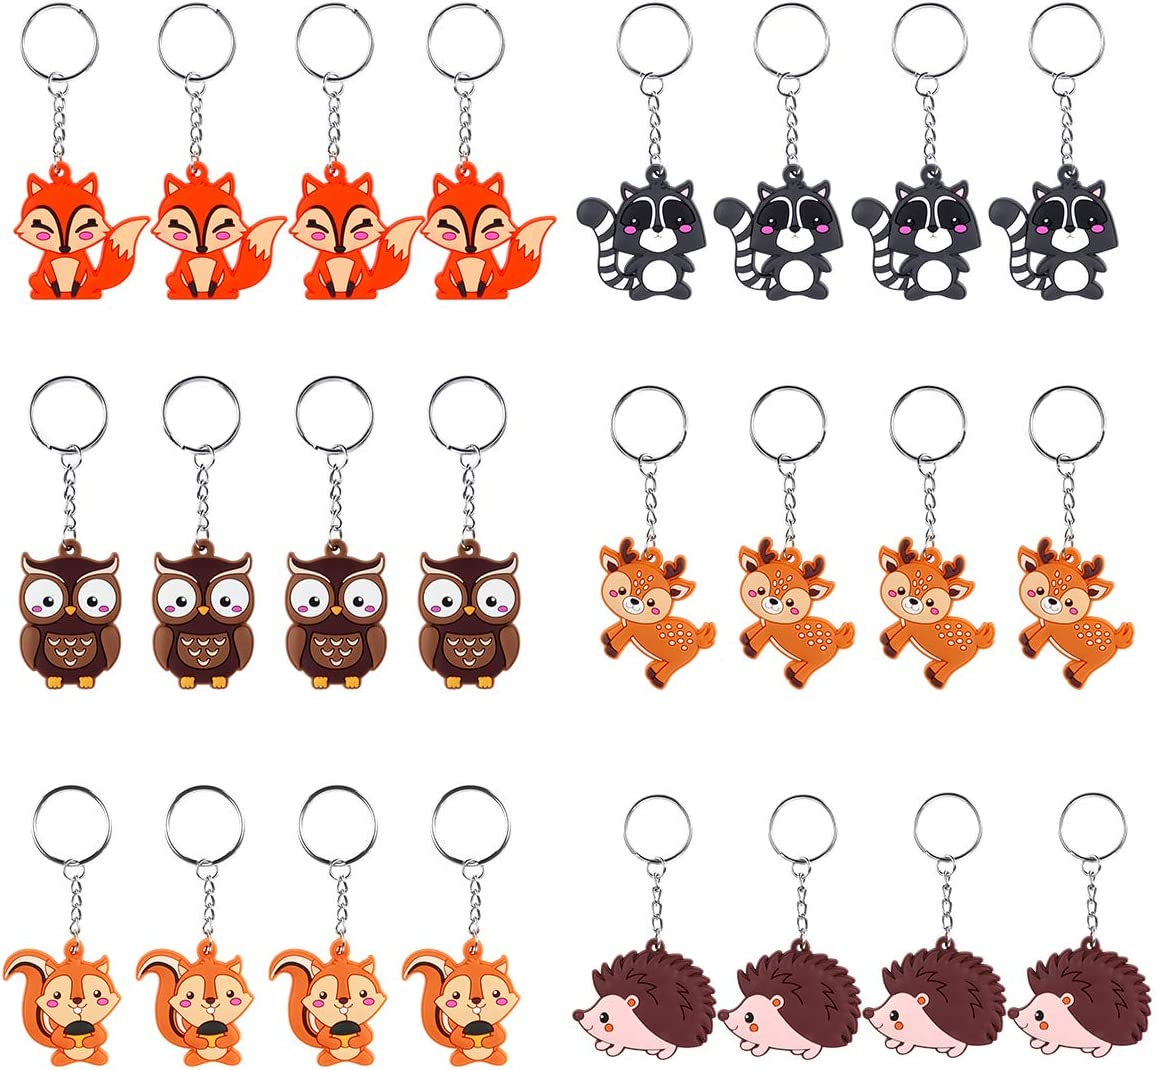 iMagitek 24 Pack Woodland Animal Keychains for Woodland Party Favors Supplies, Kids Party Bag Fillers, School Carnival Rewards, Woodland Baby Shower Party Favors